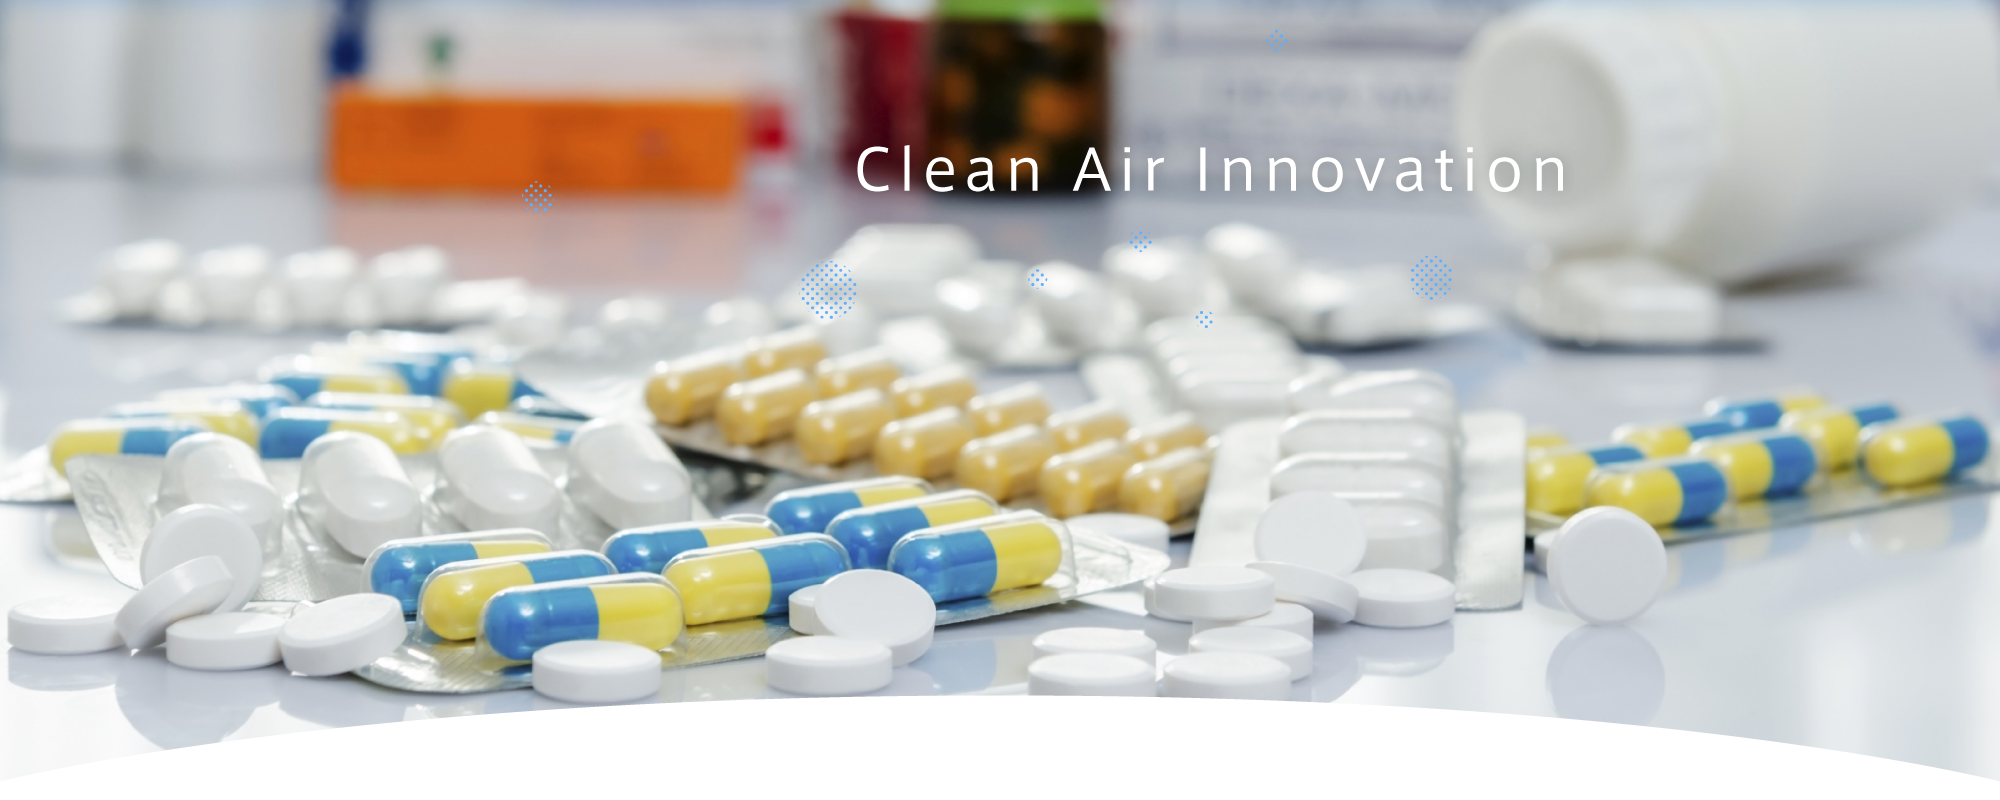 Clean Air Innovation